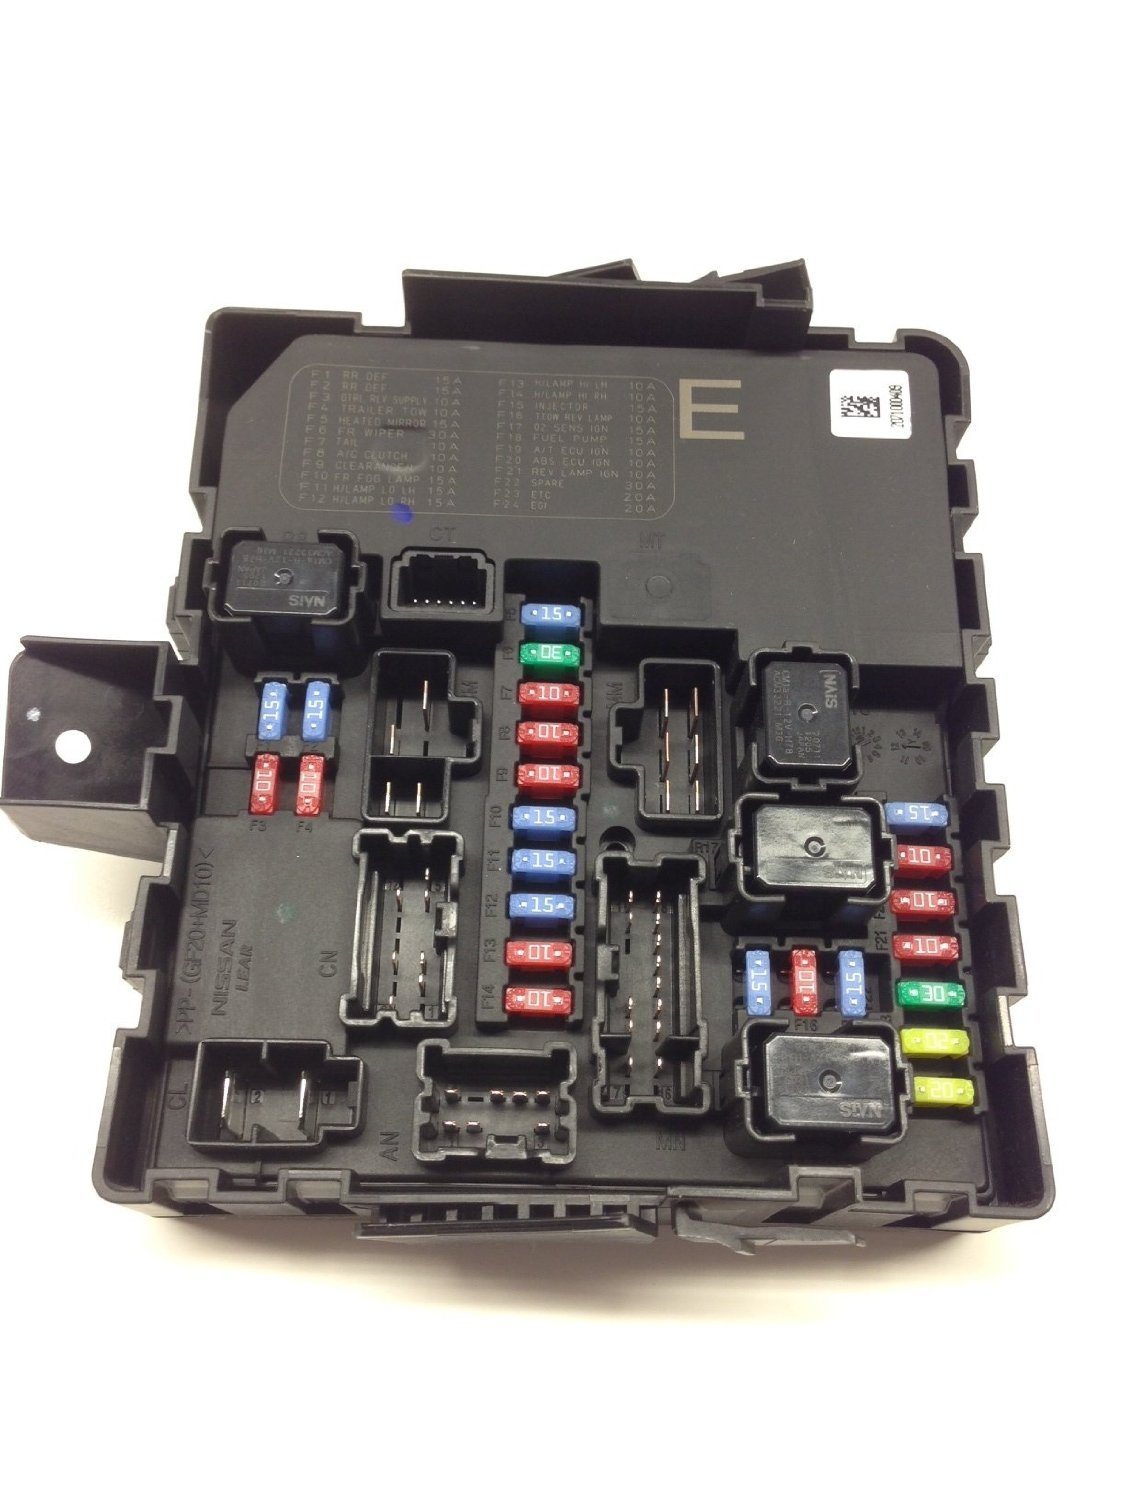 Best Rated In Automotive Replacement Fuse Boxes Helpful Customer 1999 Nissan Frontier Box Armada Pathfinder Titan Xterra Ipdm Product Image